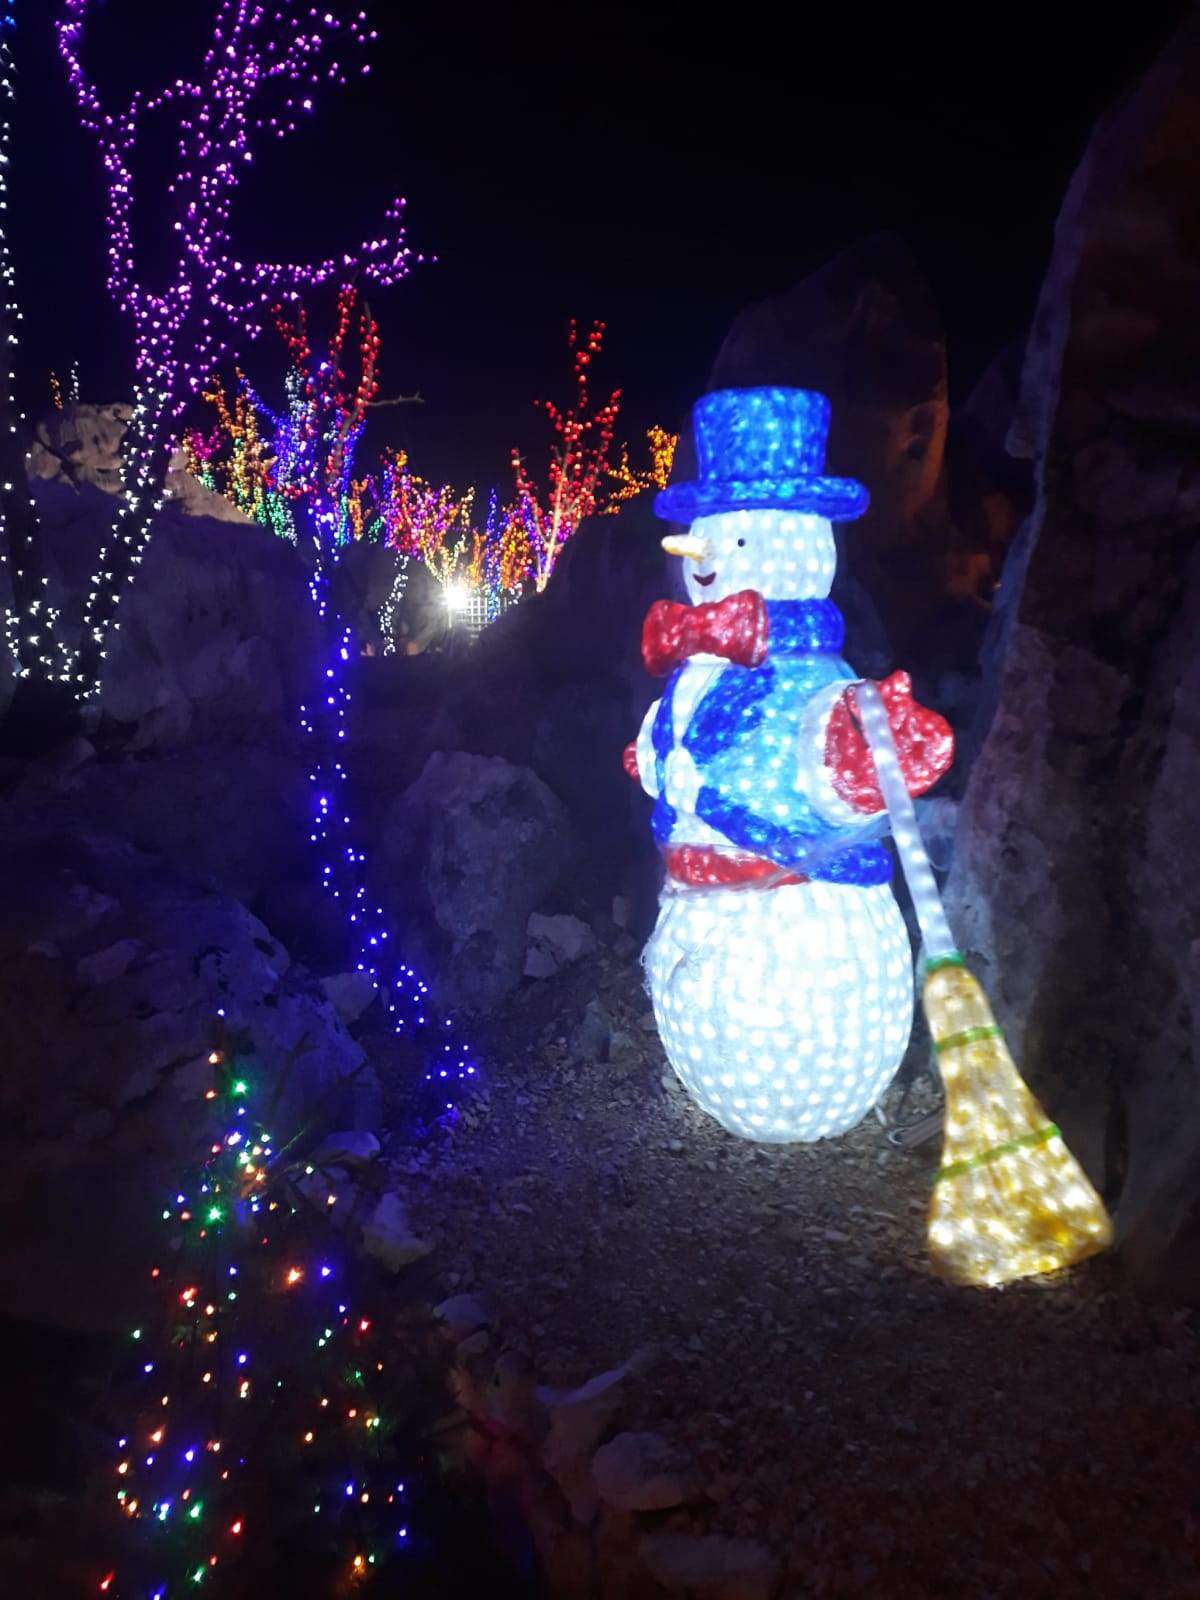 The Snowman in Christmas Village